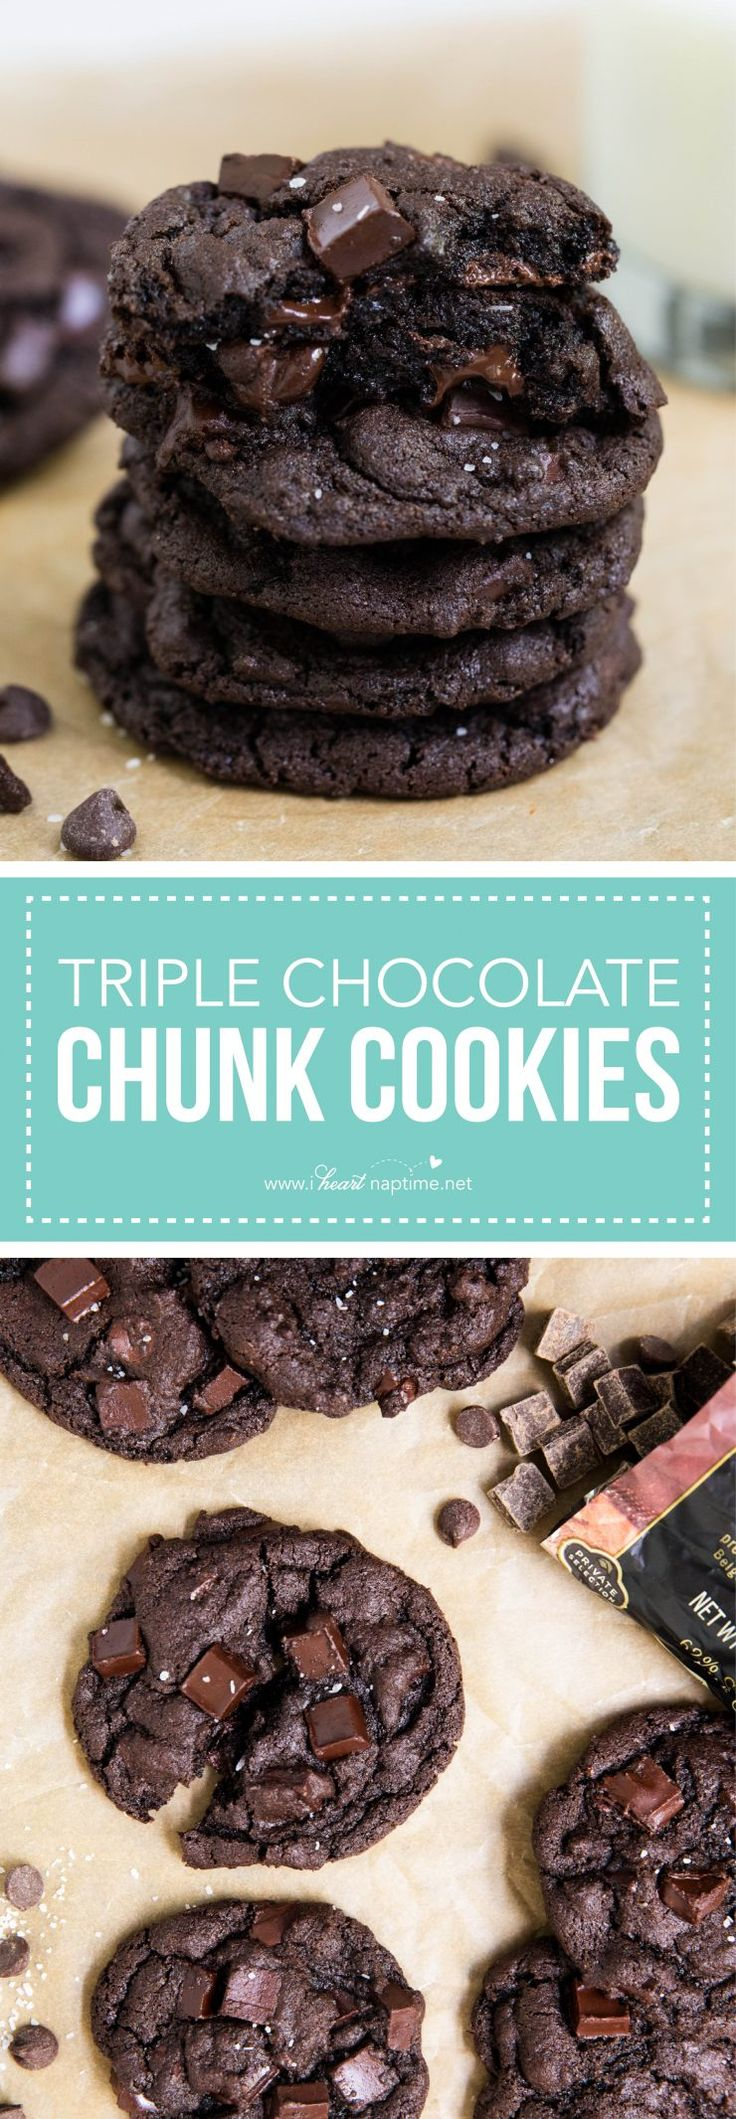 Triple chocolate chunk cookies made in partnership with @Kroger. #kroger #ad